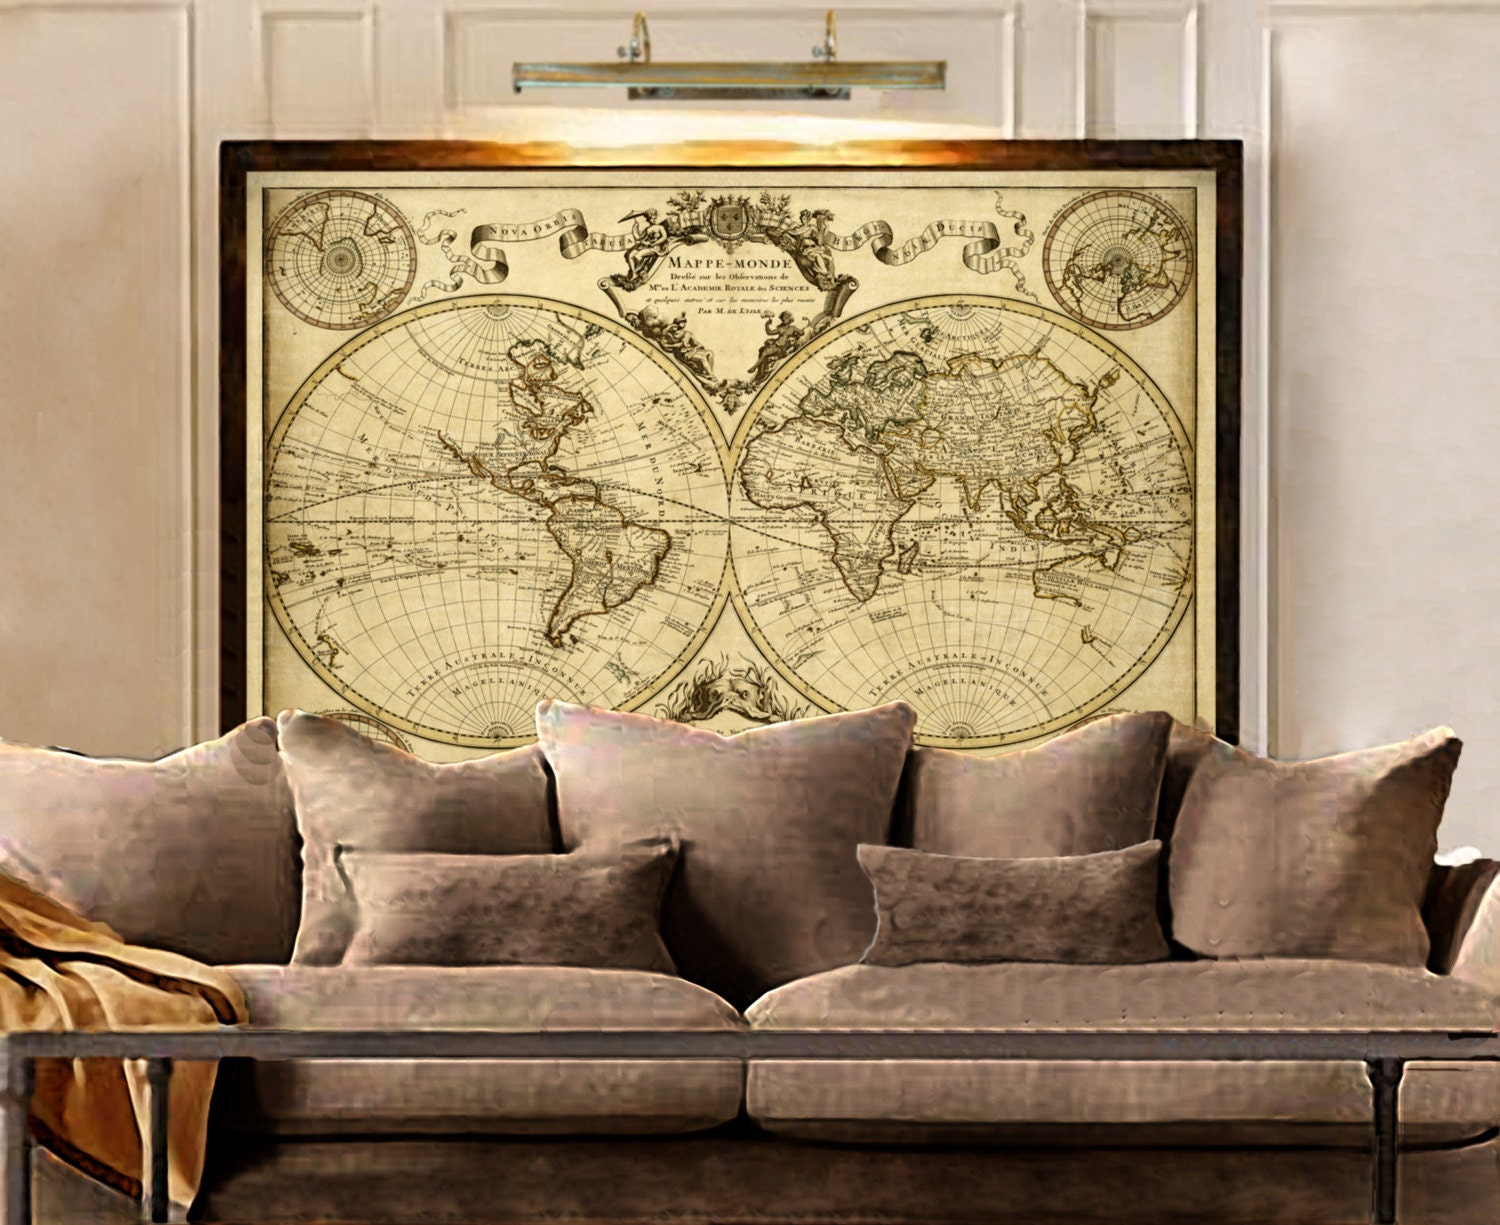 Lisles 1720 old world map historic map antique style zoom gumiabroncs Image collections